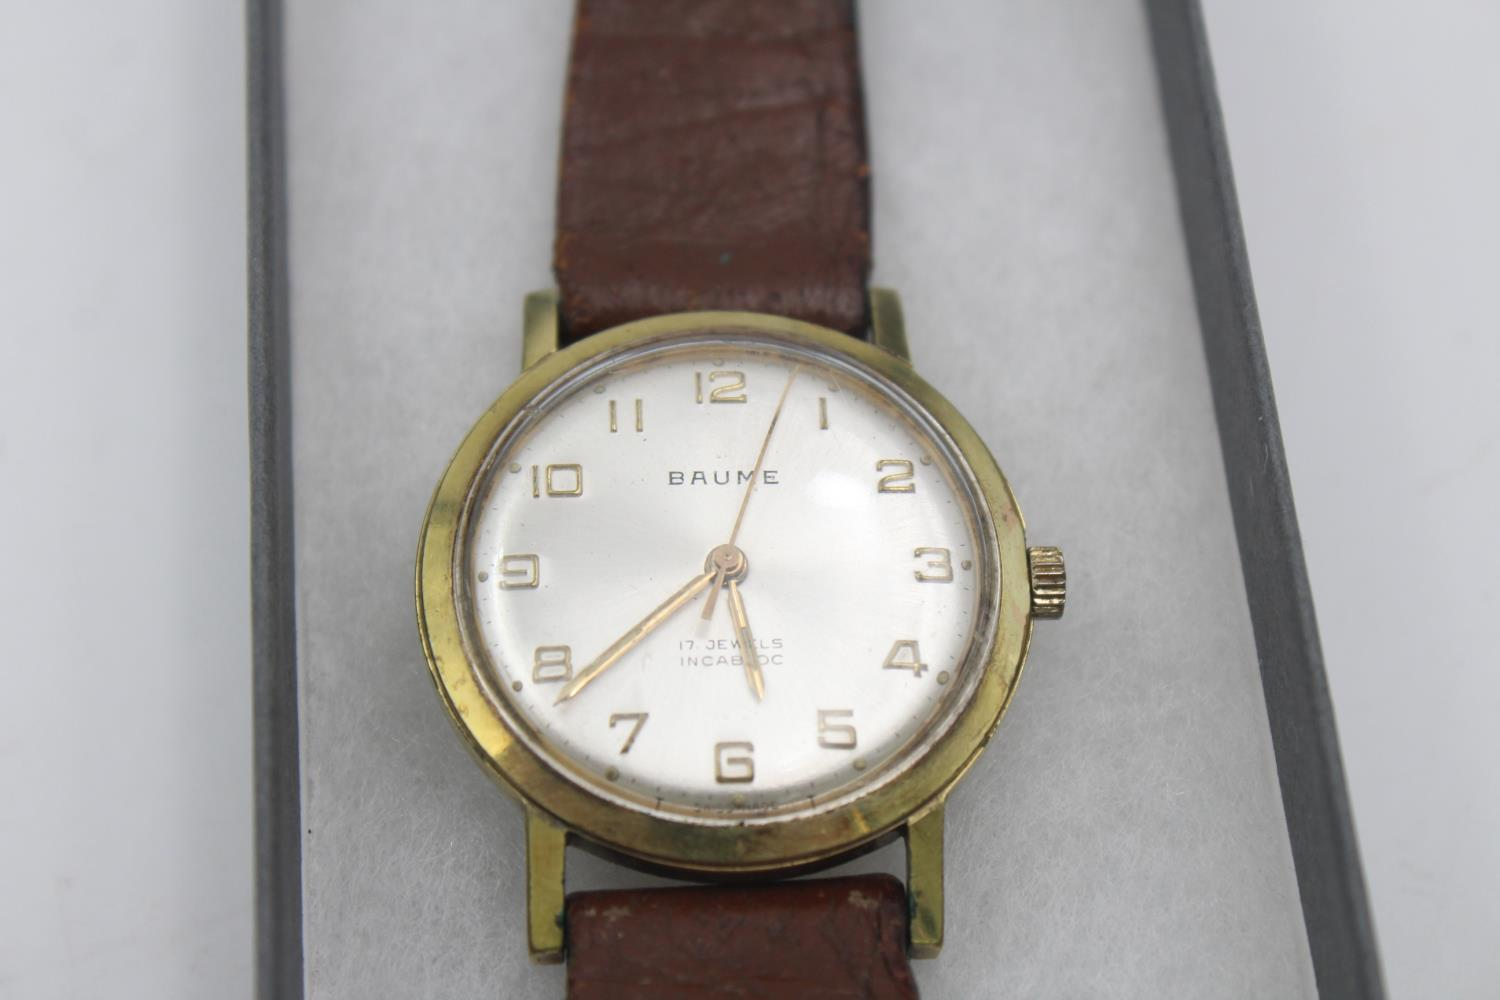 Vintage Gents BAUME Gold Tone WRISTWATCH Hand-Wind - Image 2 of 4